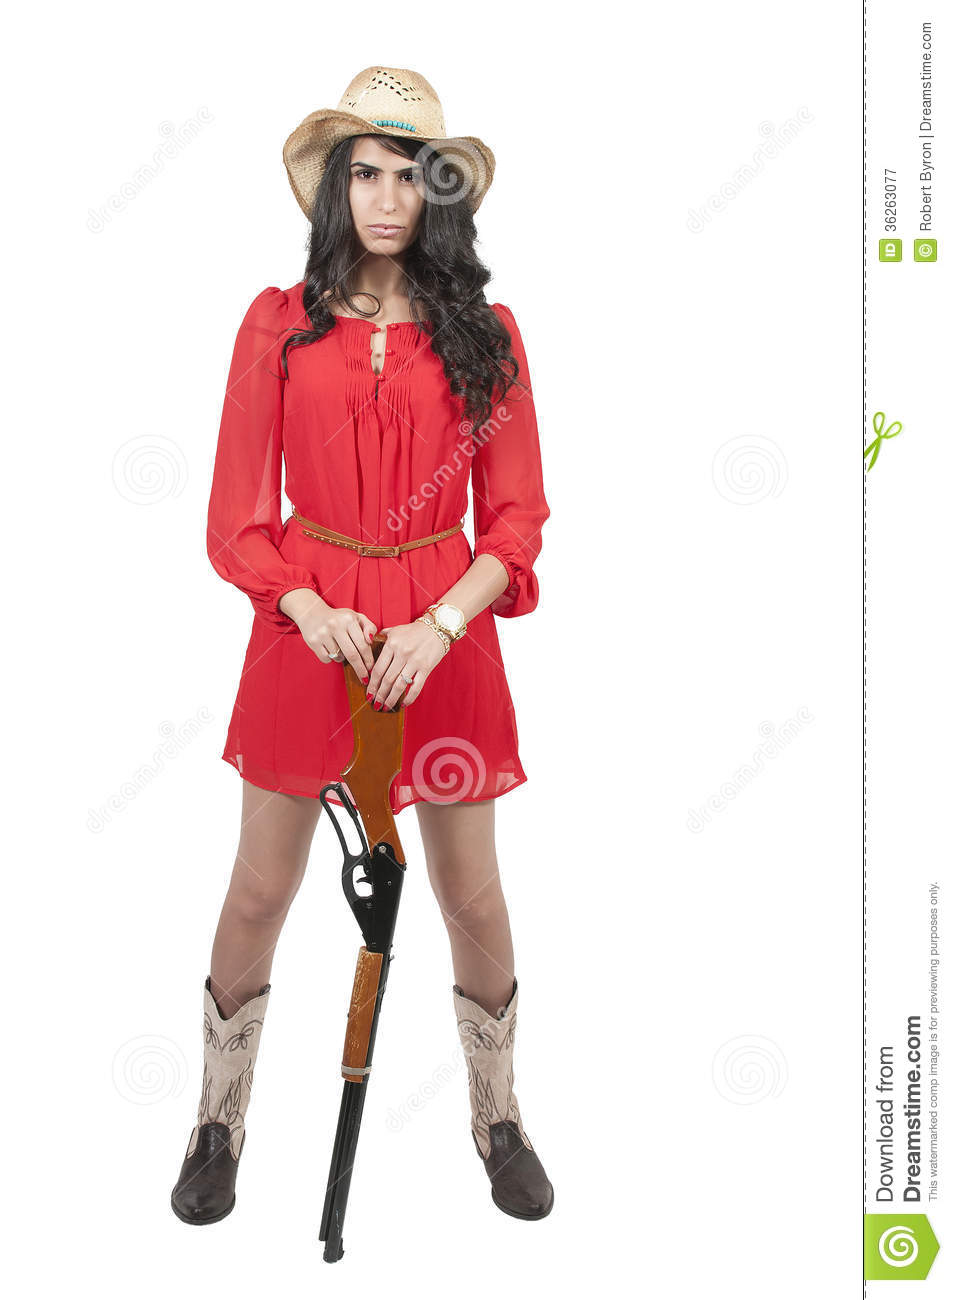 Beautiful young country girl woman wearing a stylish cowboy hat shooting a rifle  sc 1 st  Dreamstime.com & Cowgirl with Rifle stock image. Image of cowgirl seductive - 36263077